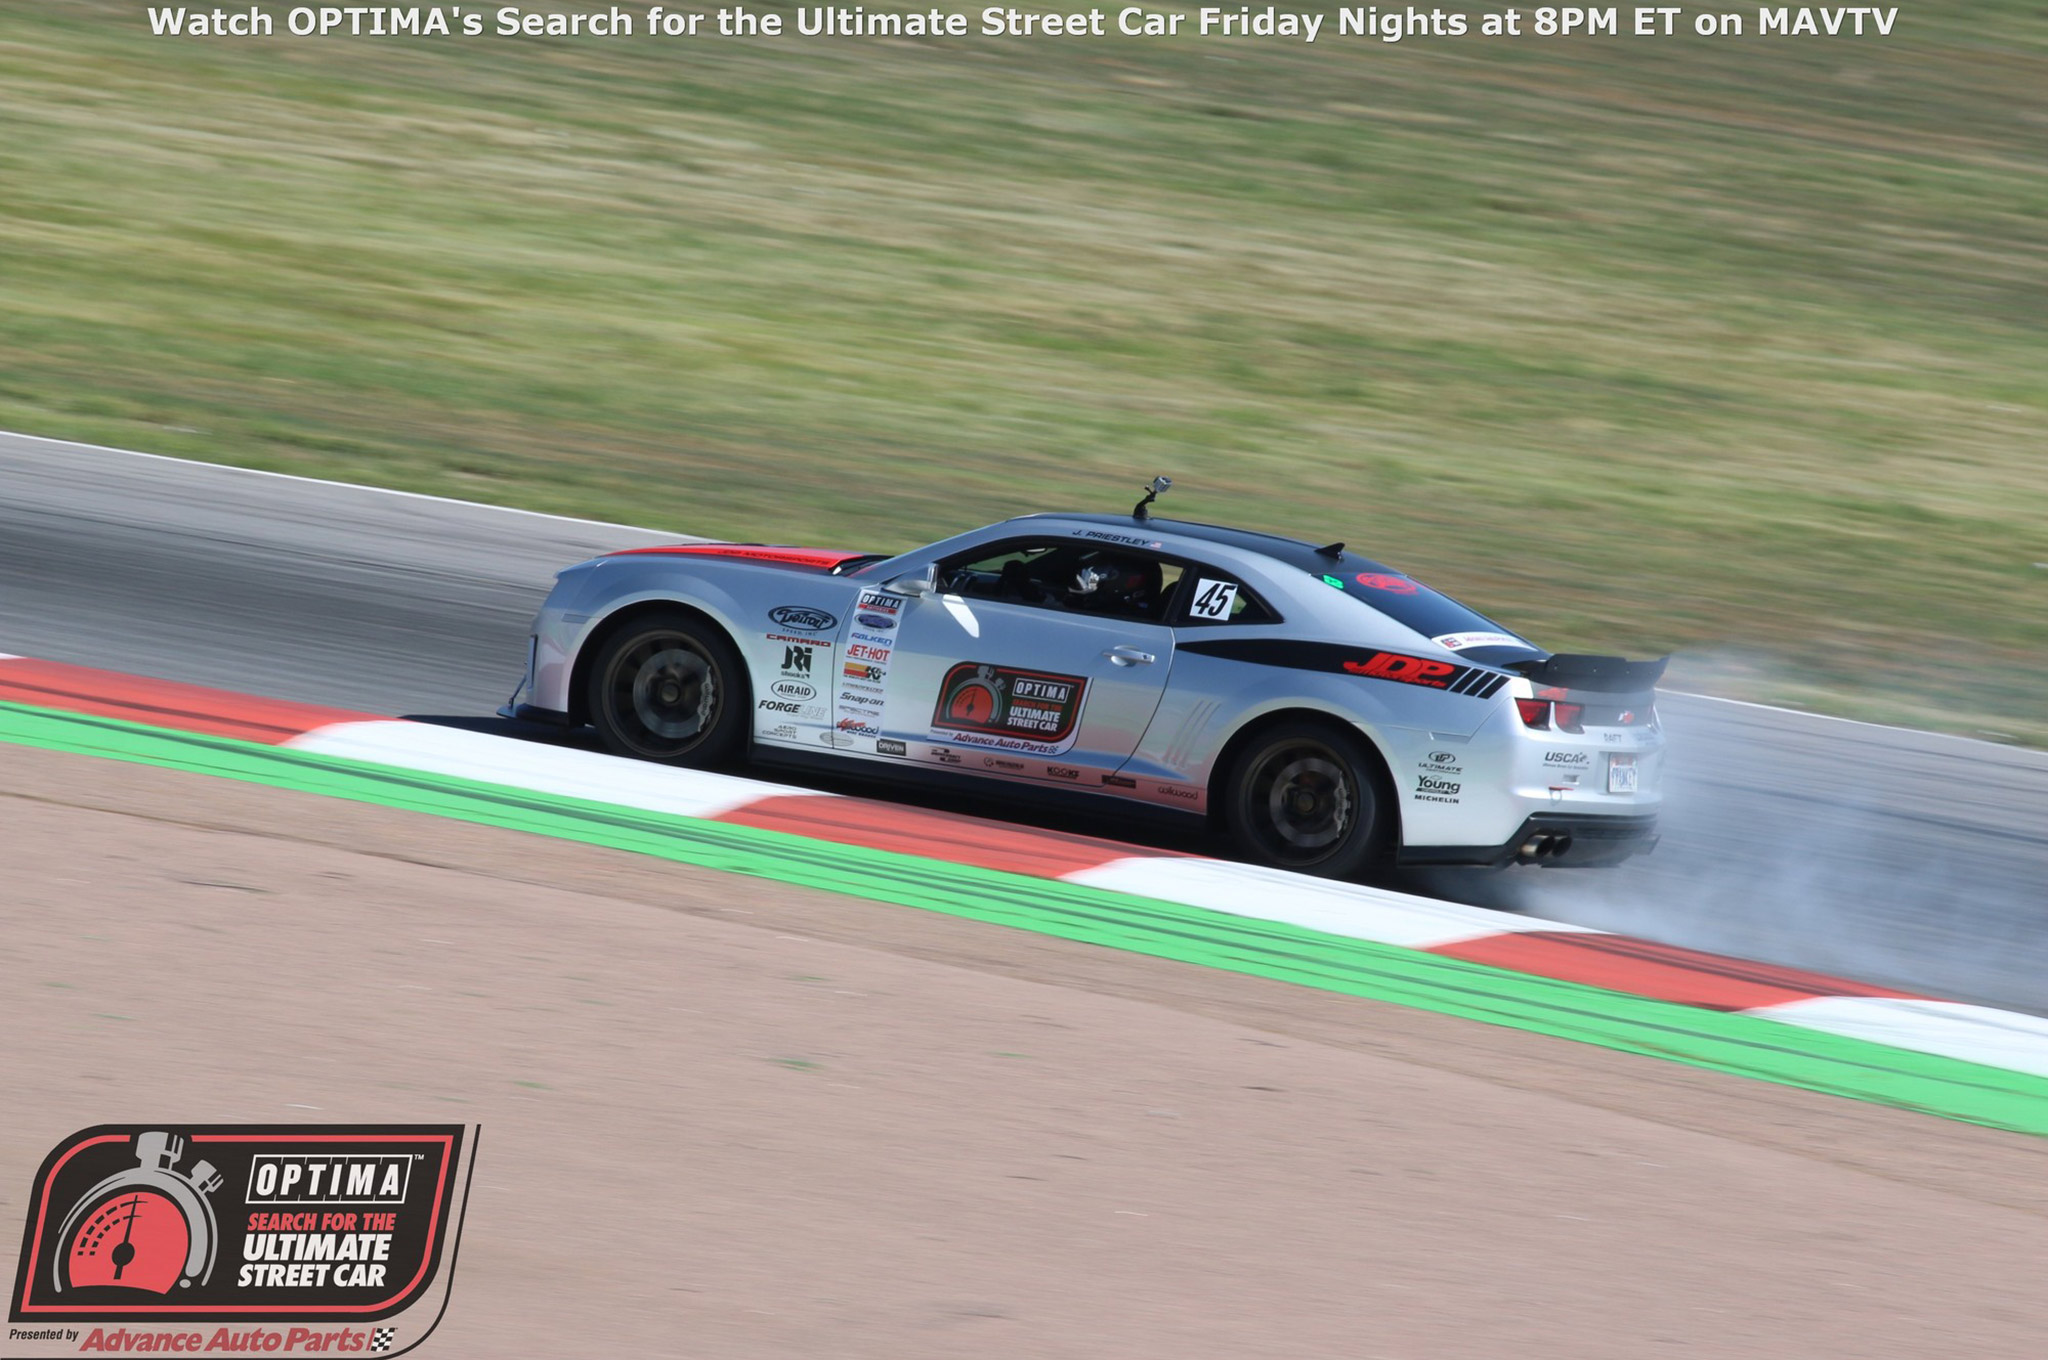 Some differential issues couldn't stop Jordan Priestly from winning the GT class in his 2011 Camaro. Priestley had previously qualified for the OUSCI at the Las Vegas qualifier but this was his first GT class win of the season.